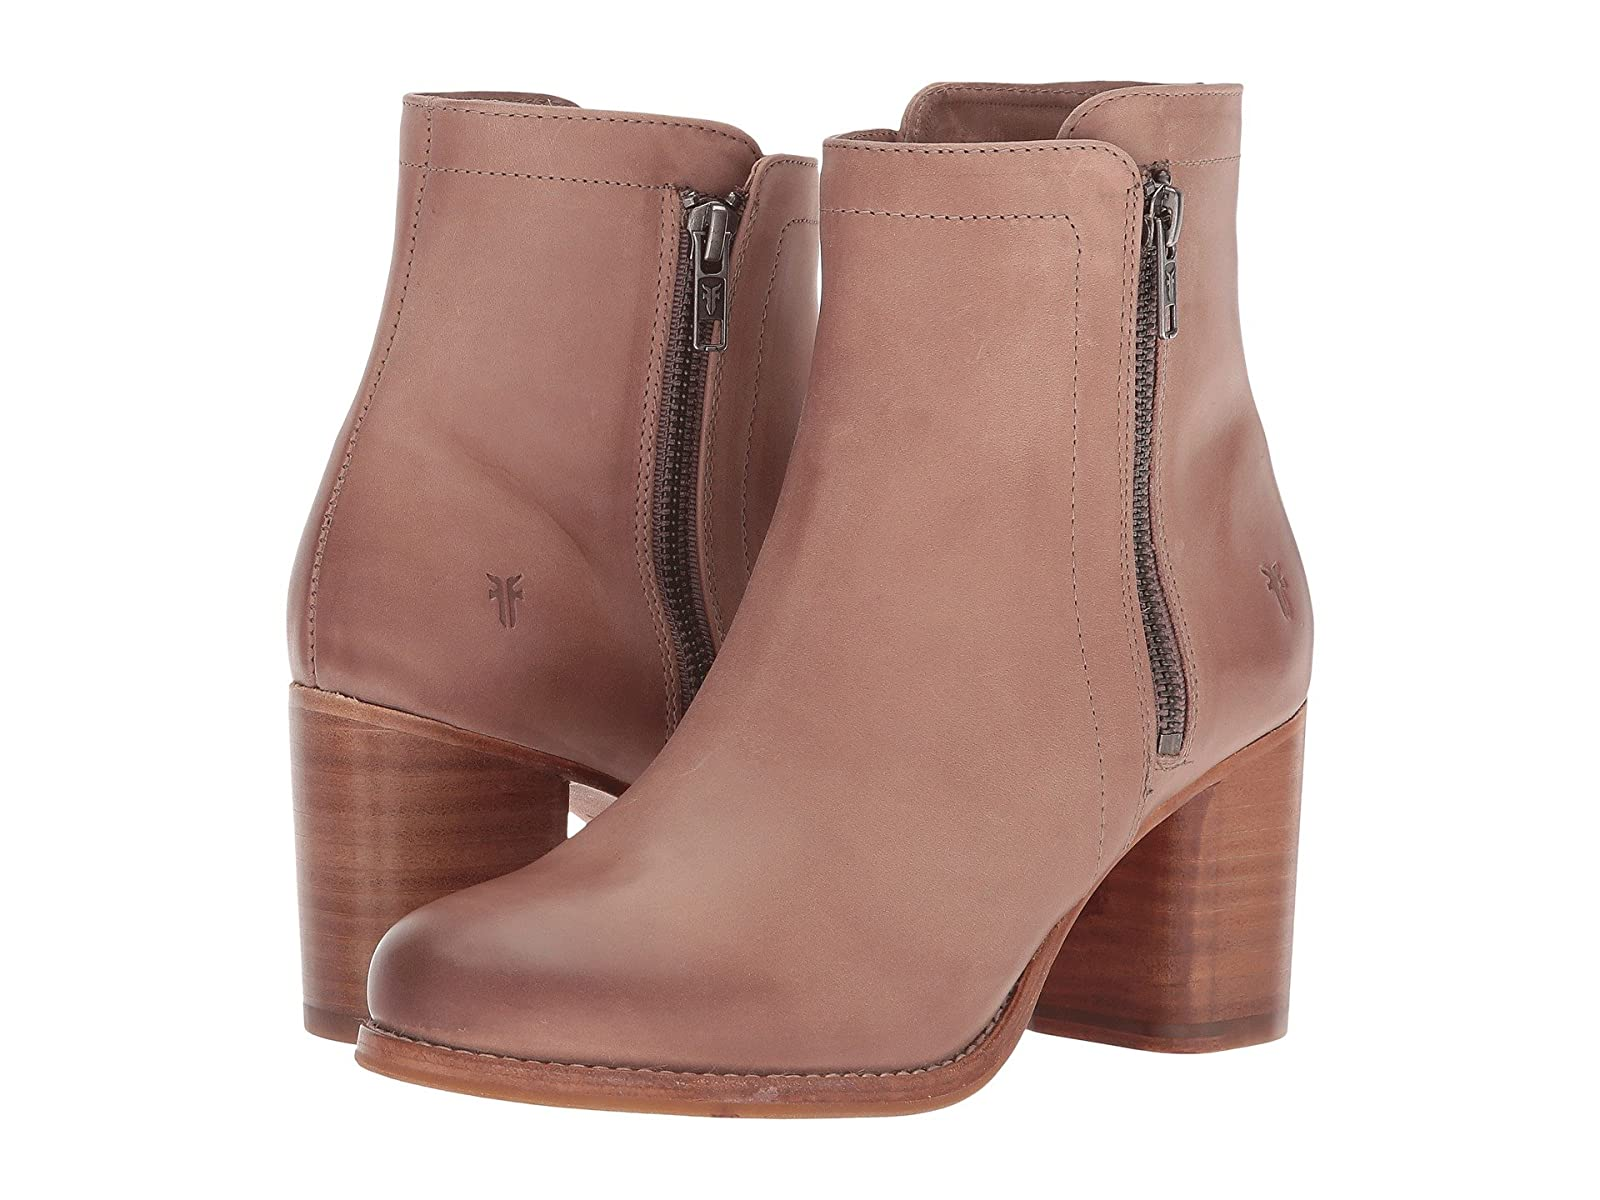 Frye Addie Double ZipCheap and distinctive eye-catching shoes